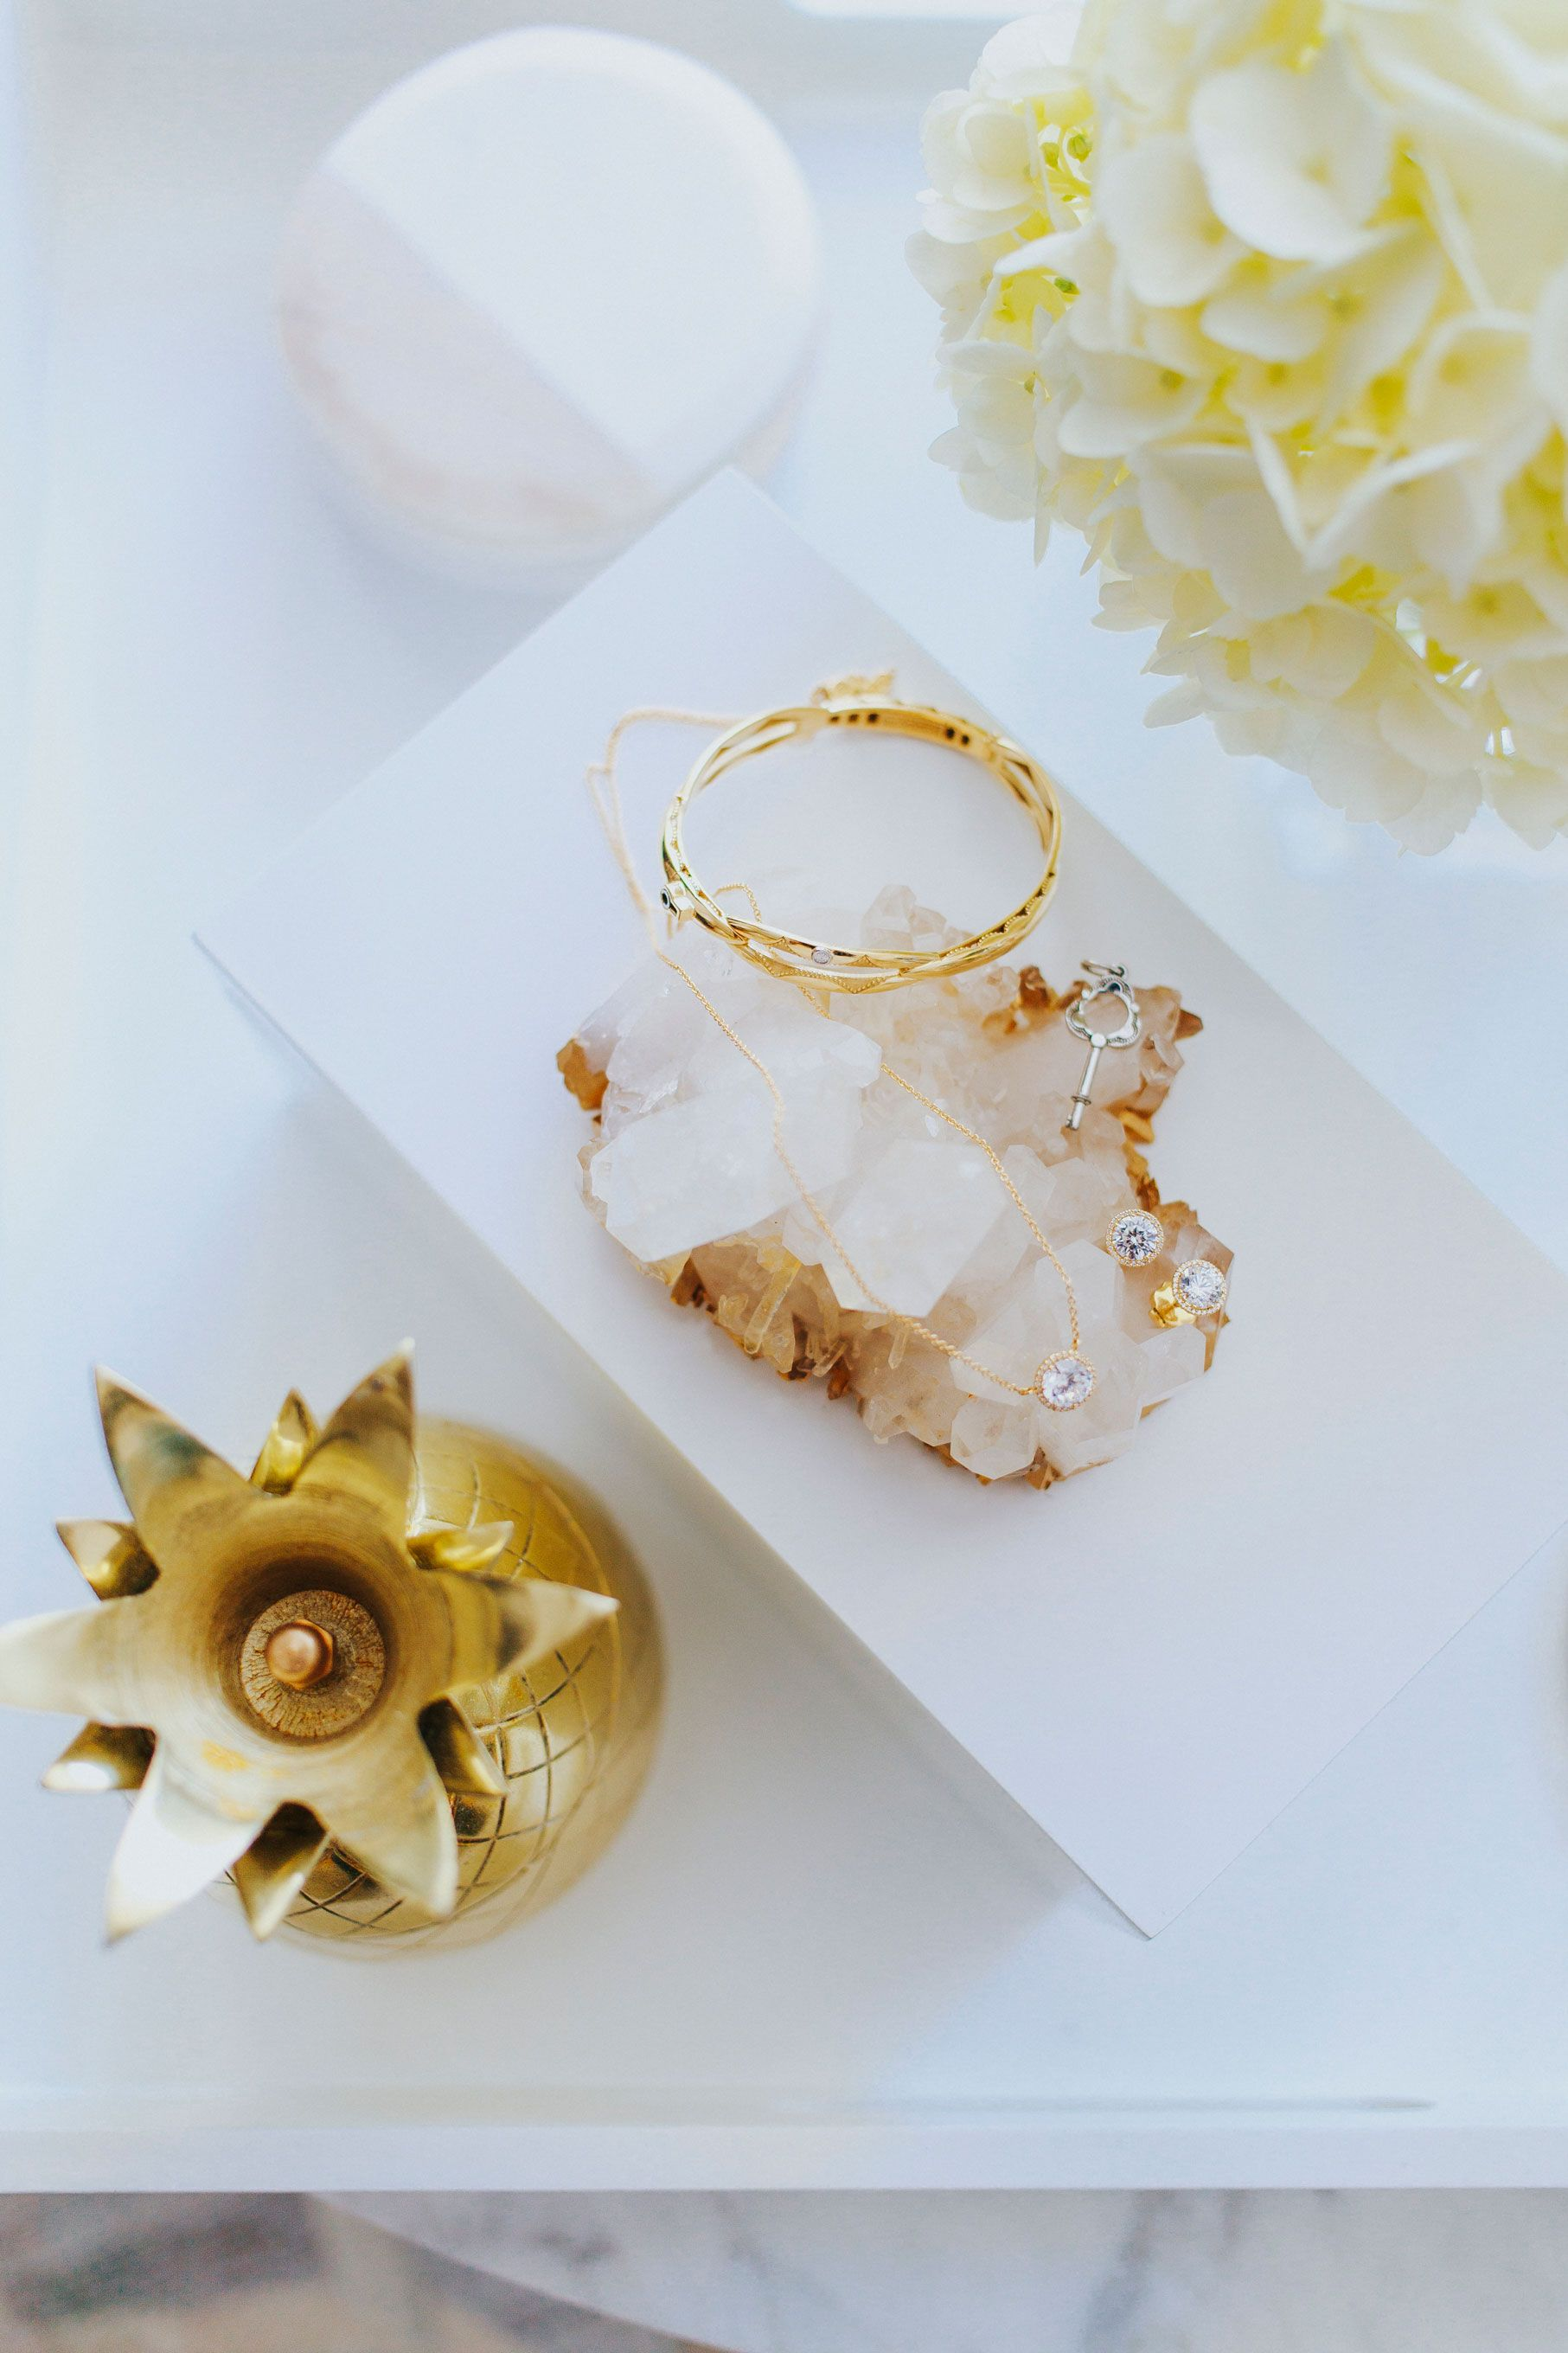 """<p>""""I'm obsessed with the feminine details of these handcrafted pieces by Tacori.<span class=""""redactor-invisible-space"""" data-verified=""""redactor"""" data-redactor-tag=""""span"""" data-redactor-class=""""redactor-invisible-space""""></span>""""</p><p><em data-redactor-tag=""""em"""" data-verified=""""redactor"""">Tacori Oval Promise Bracelet Yellow Gold, $5,900; Encore Diamond Necklace*, $1,310; Encore Diamond Stud Earrings*, $1,790; Oval Promise Bracelet Silver and Rose Gold, $2,700; Crescent Station Necklace London Blue Topaz, $500; Crescent Crown Stud Earrings London Blue Topaz, $650; *center diamond not included; <a href=""""https://www.tacori.com/"""" data-tracking-id=""""recirc-text-link"""">tacori.com</a></em></p>"""